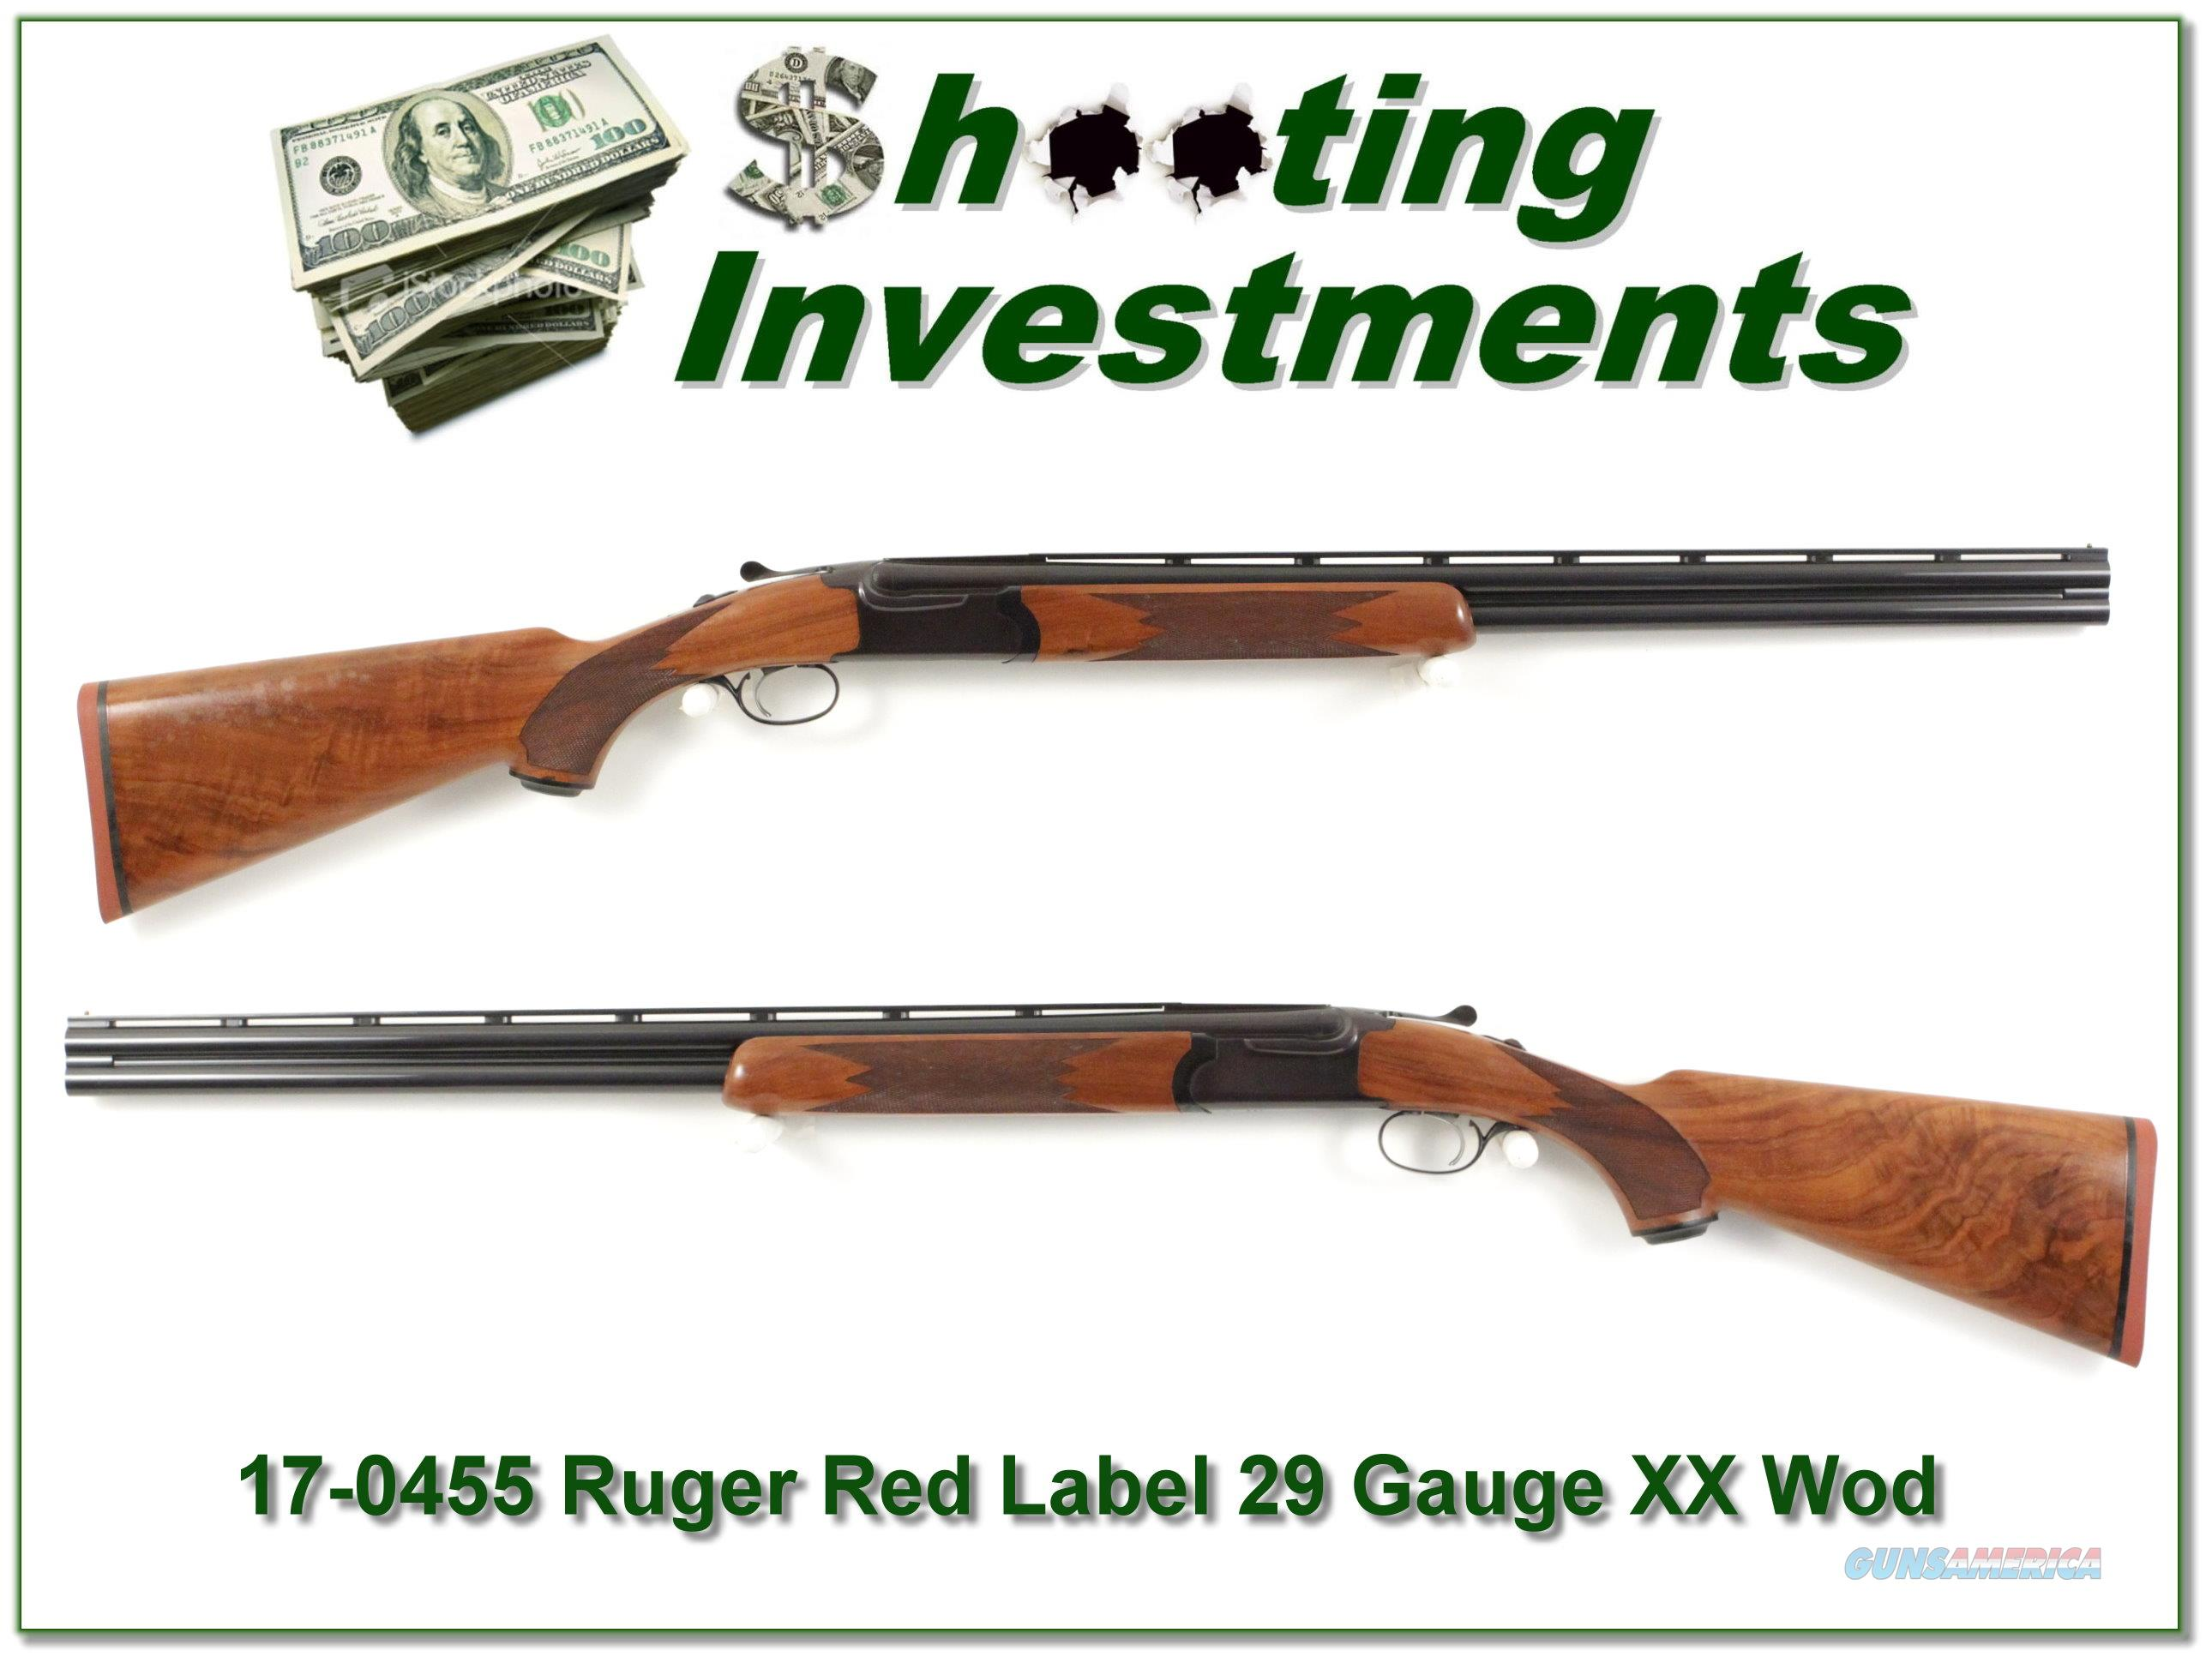 Ruger Red Label 20 Gauge XX Wood mint 26in Skeet & Skeet  Guns > Shotguns > Ruger Shotguns > Hunting